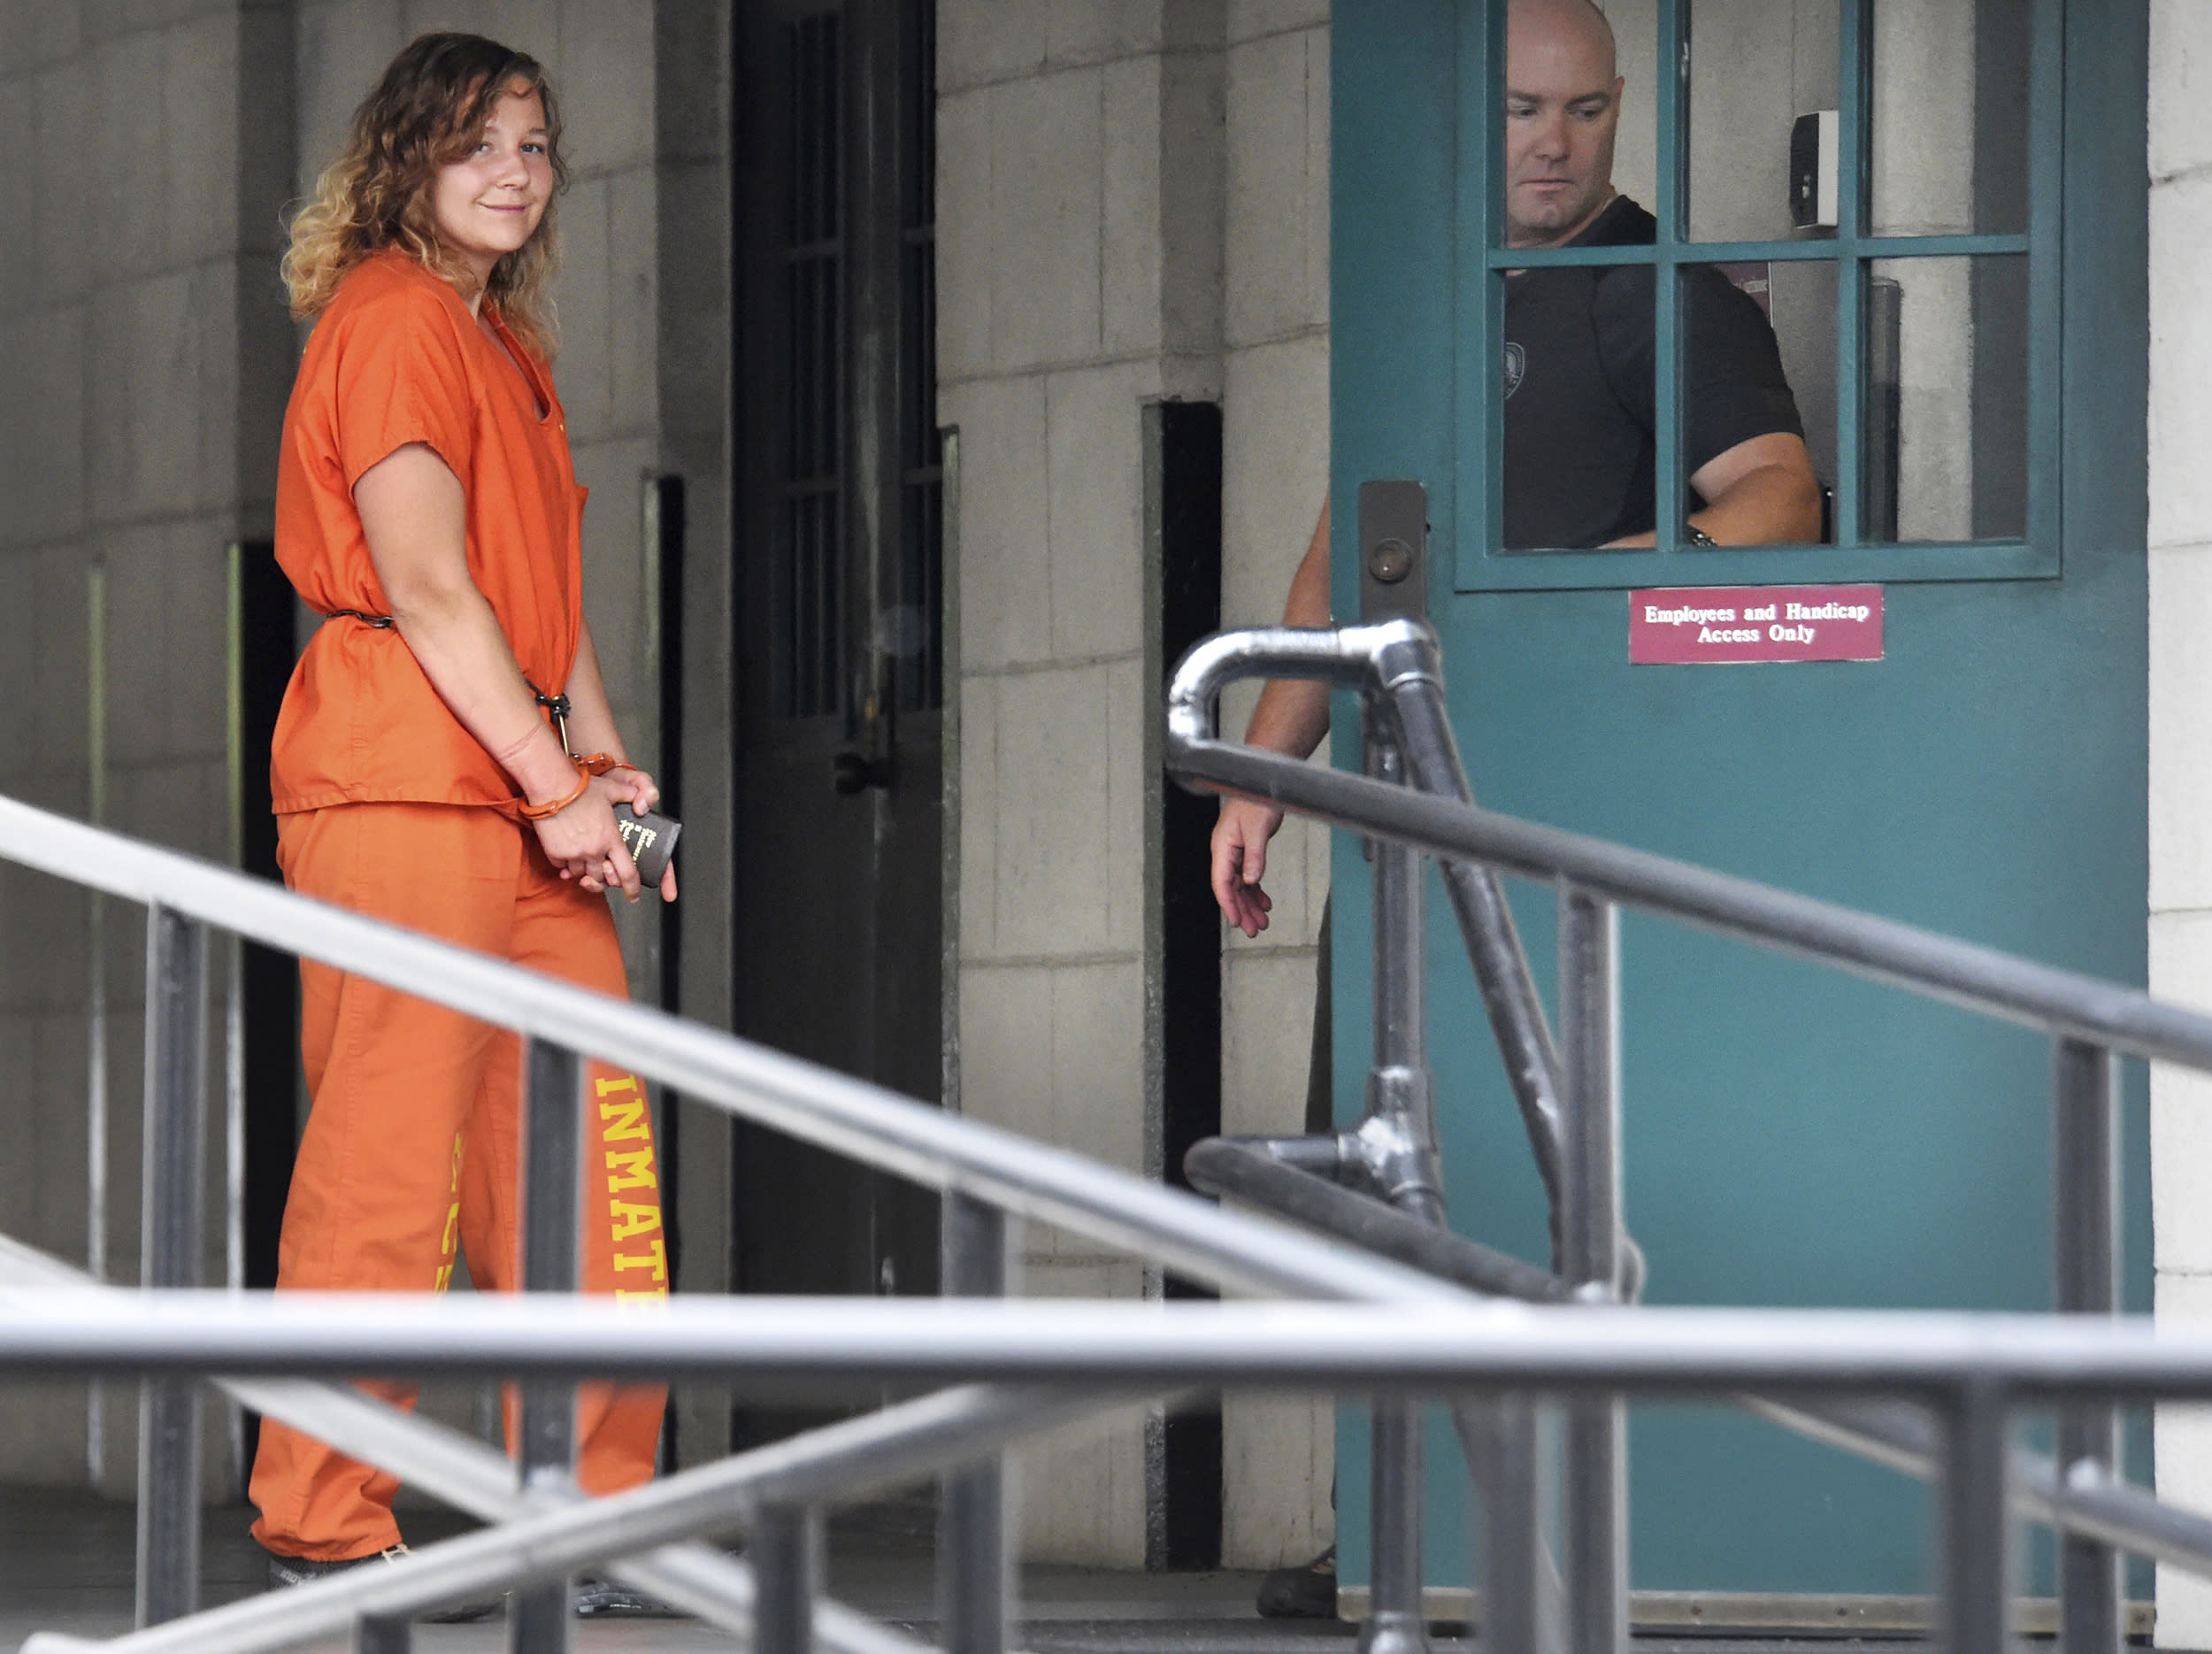 Reality Winner, jailed for leaking secrets about Russia hacking, asks Trump for clemency